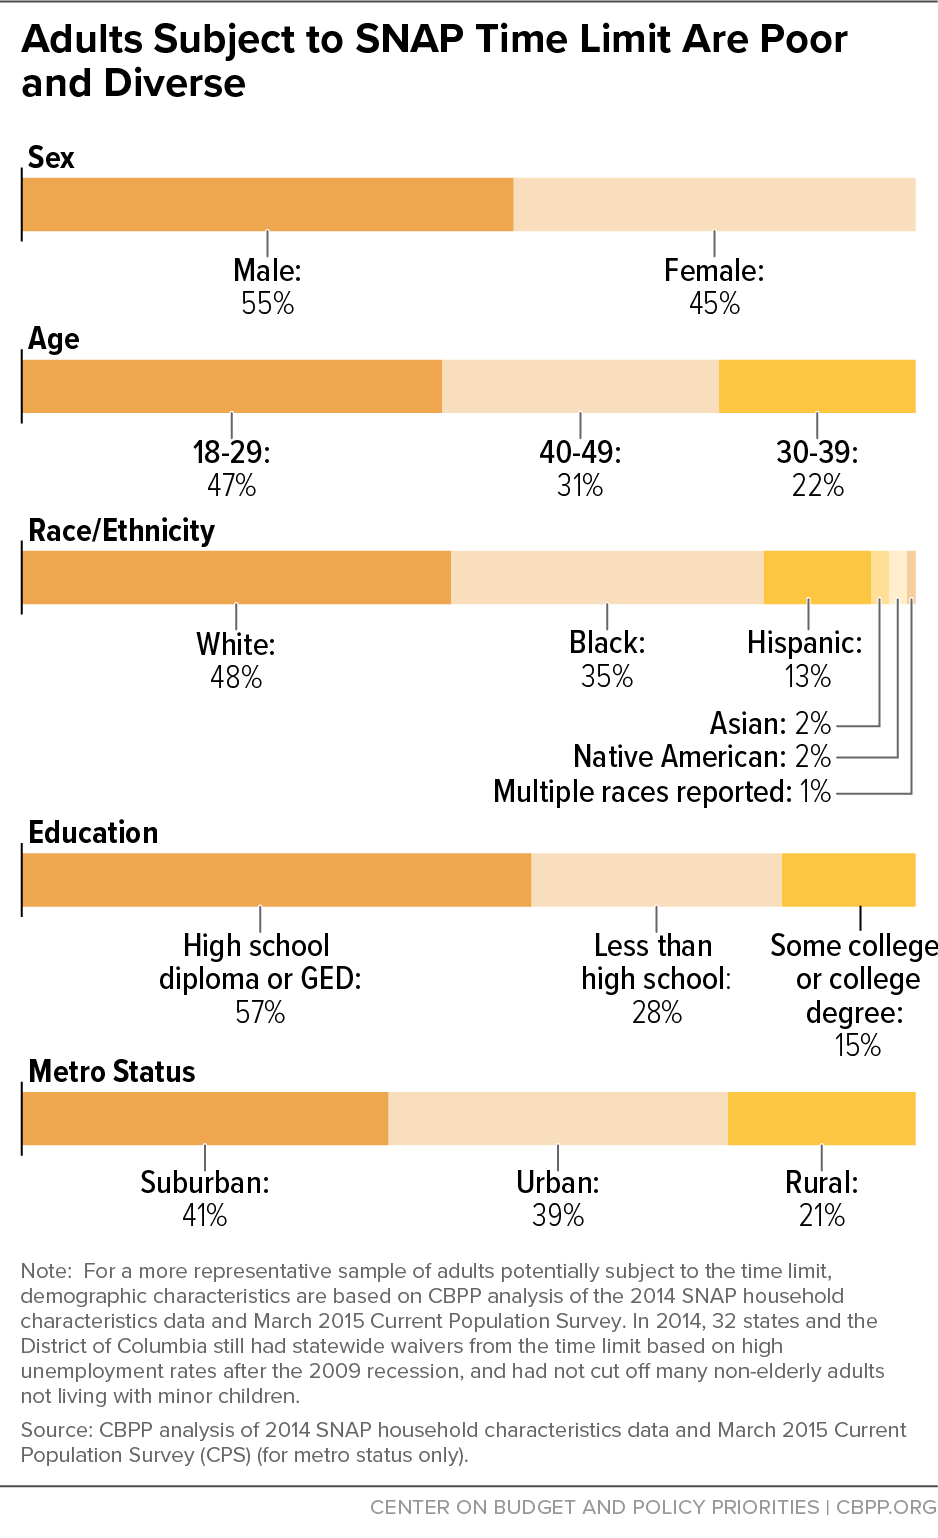 Adults Subject to SNAP Time Limit Are Poor and Diverse